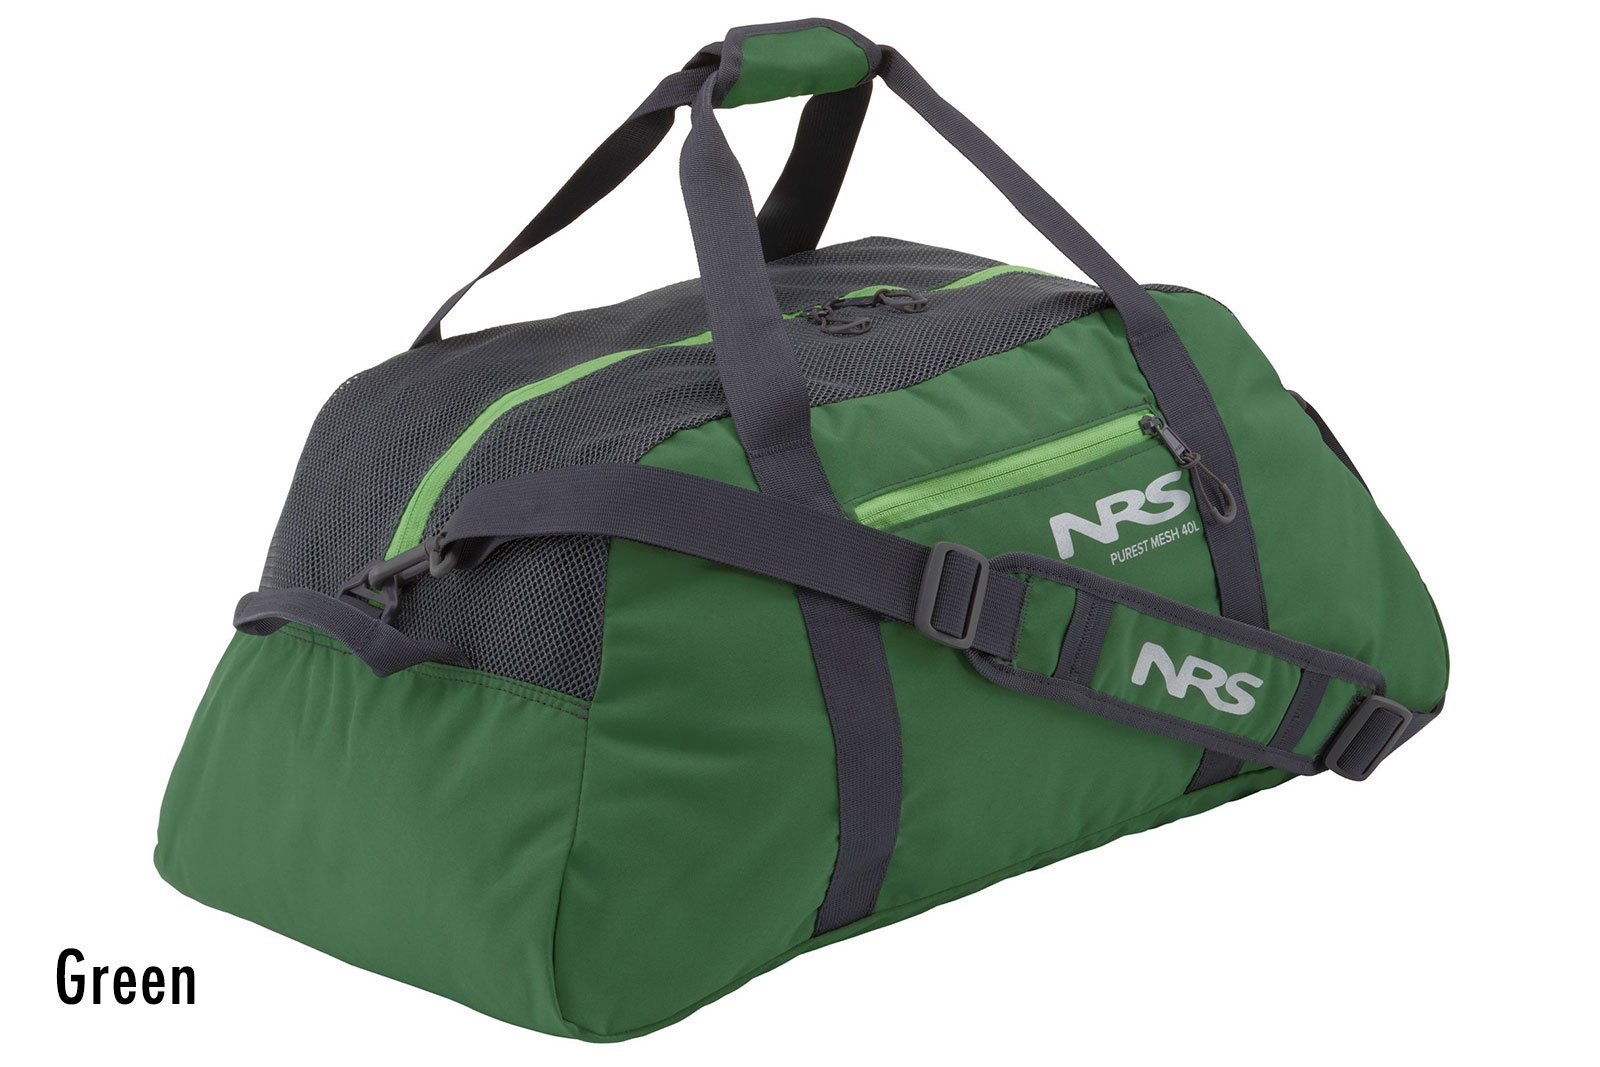 <img class='new_mark_img1' src='https://img.shop-pro.jp/img/new/icons5.gif' style='border:none;display:inline;margin:0px;padding:0px;width:auto;' />NRS Purest Mesh Duffel Bag (55003.02)